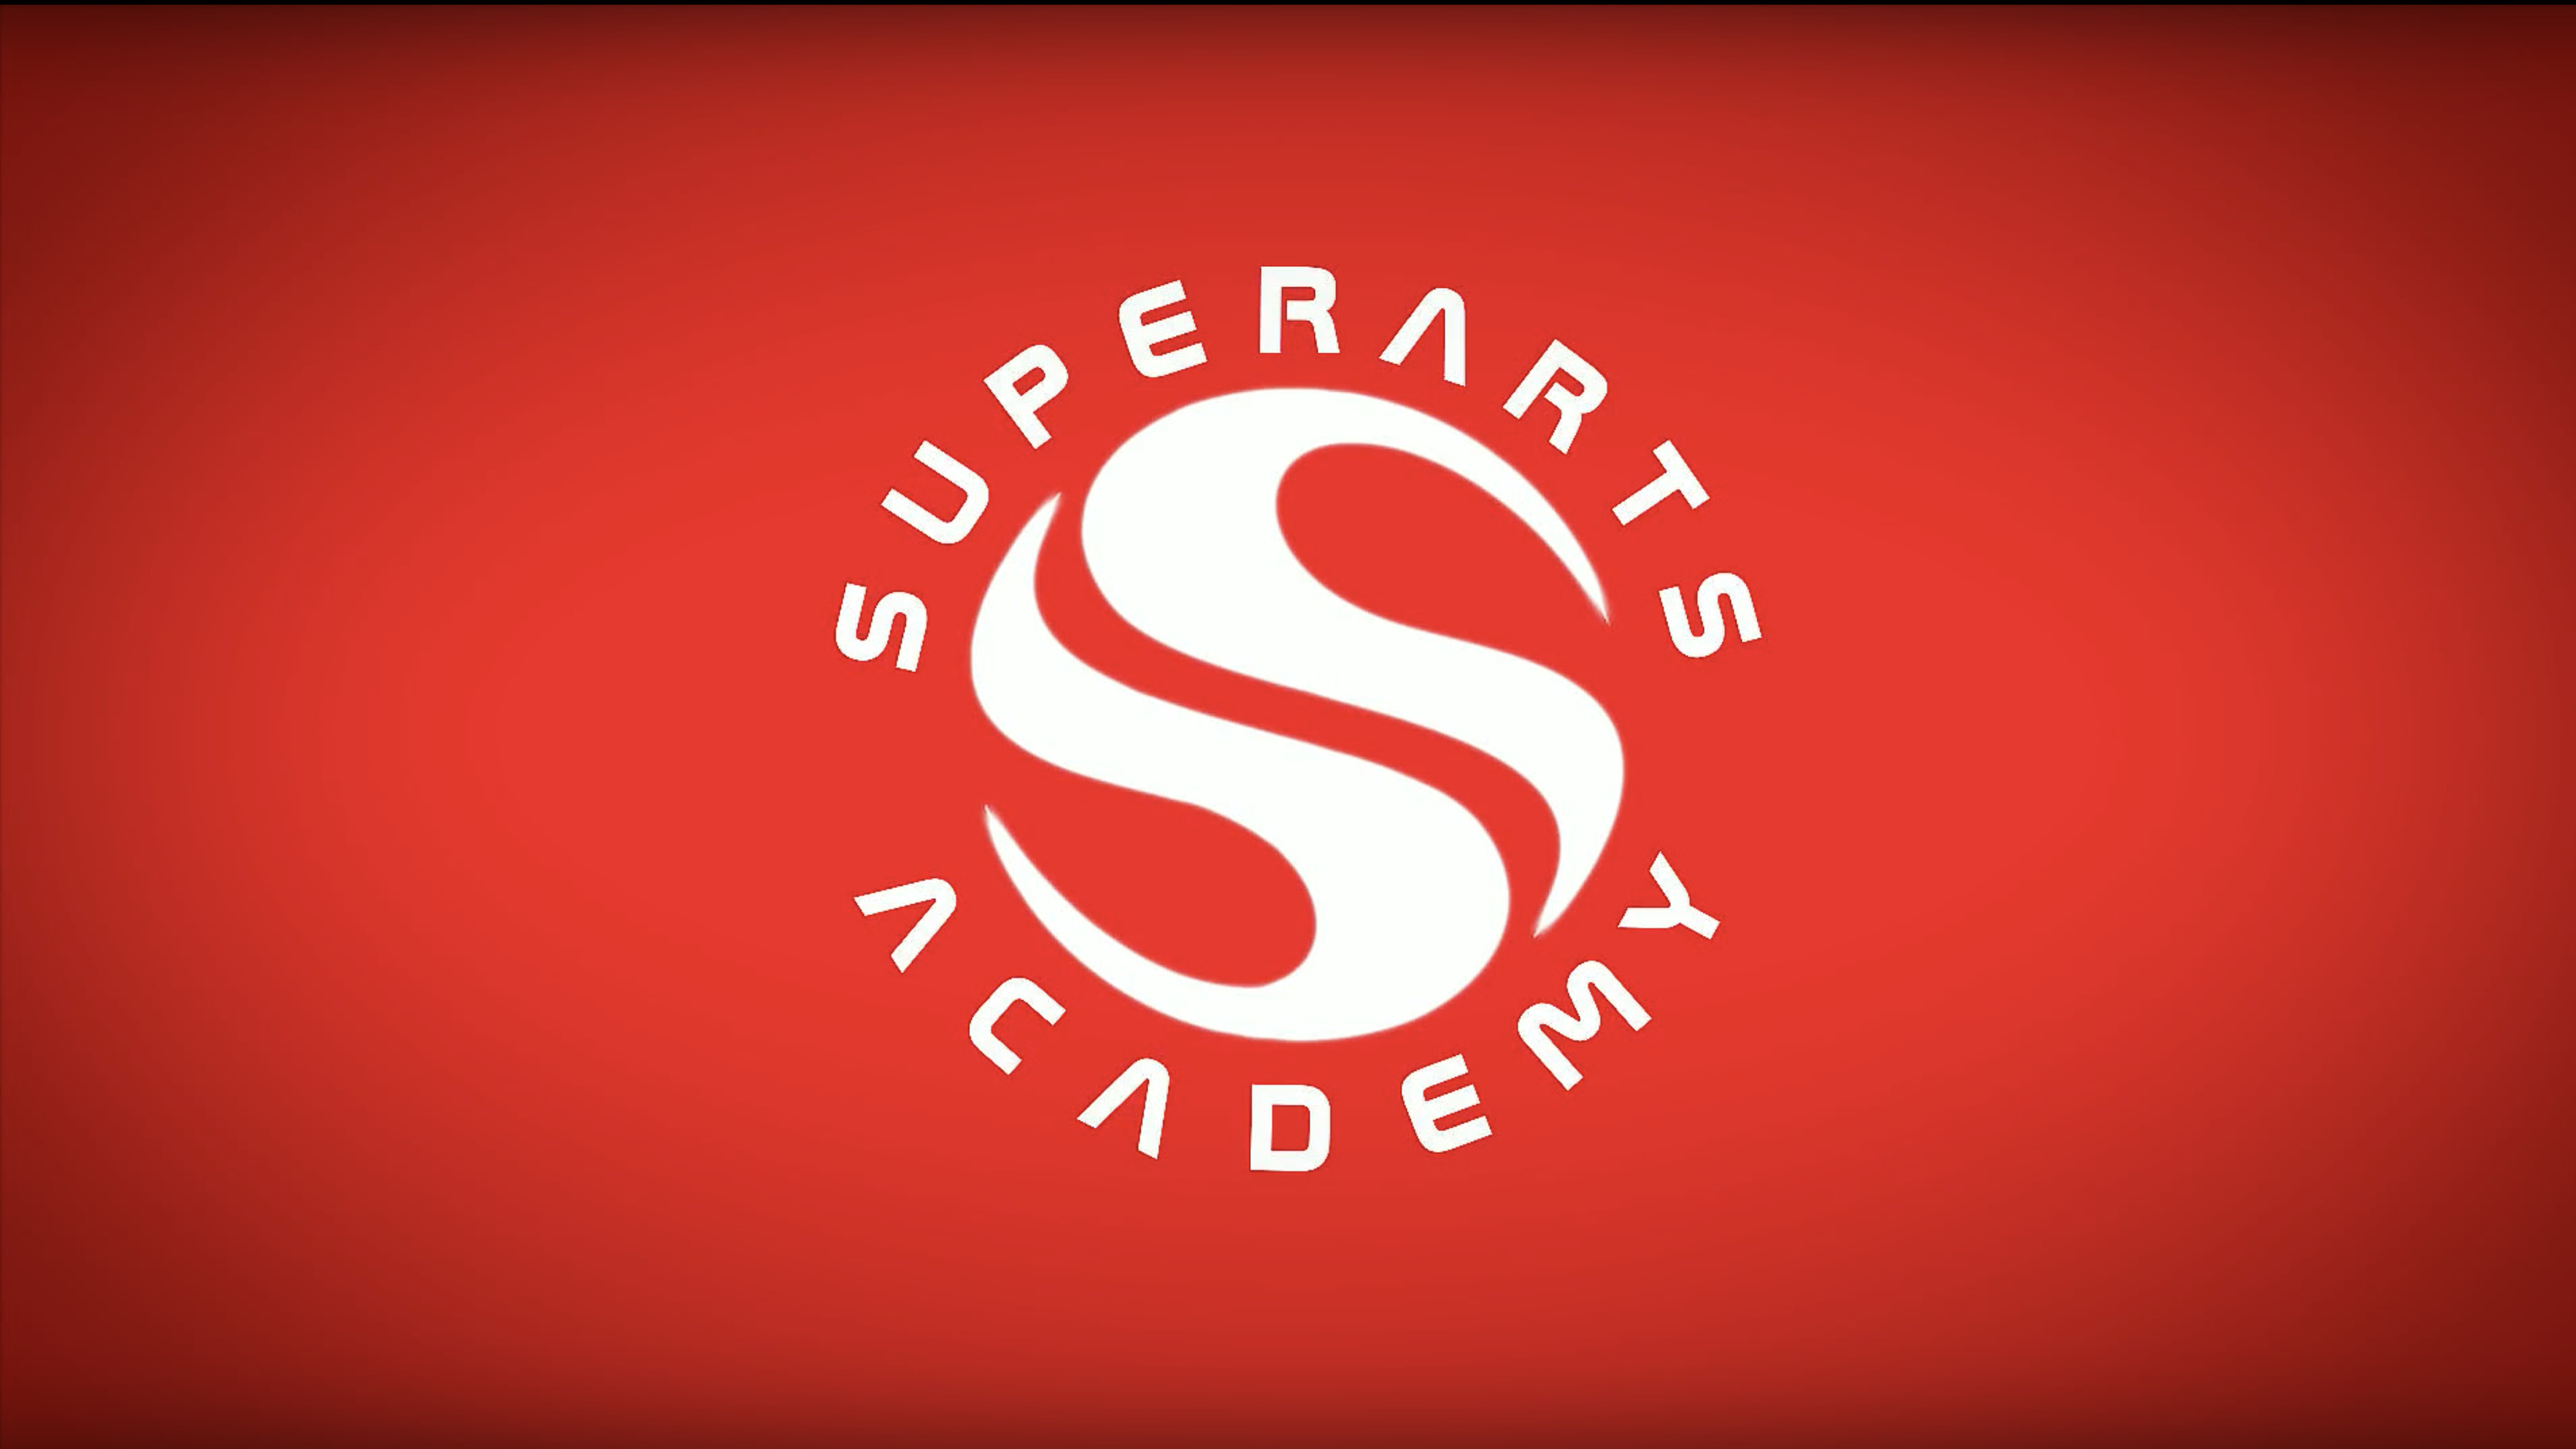 Red background with large red S in the middle with Superarts Academy circling it